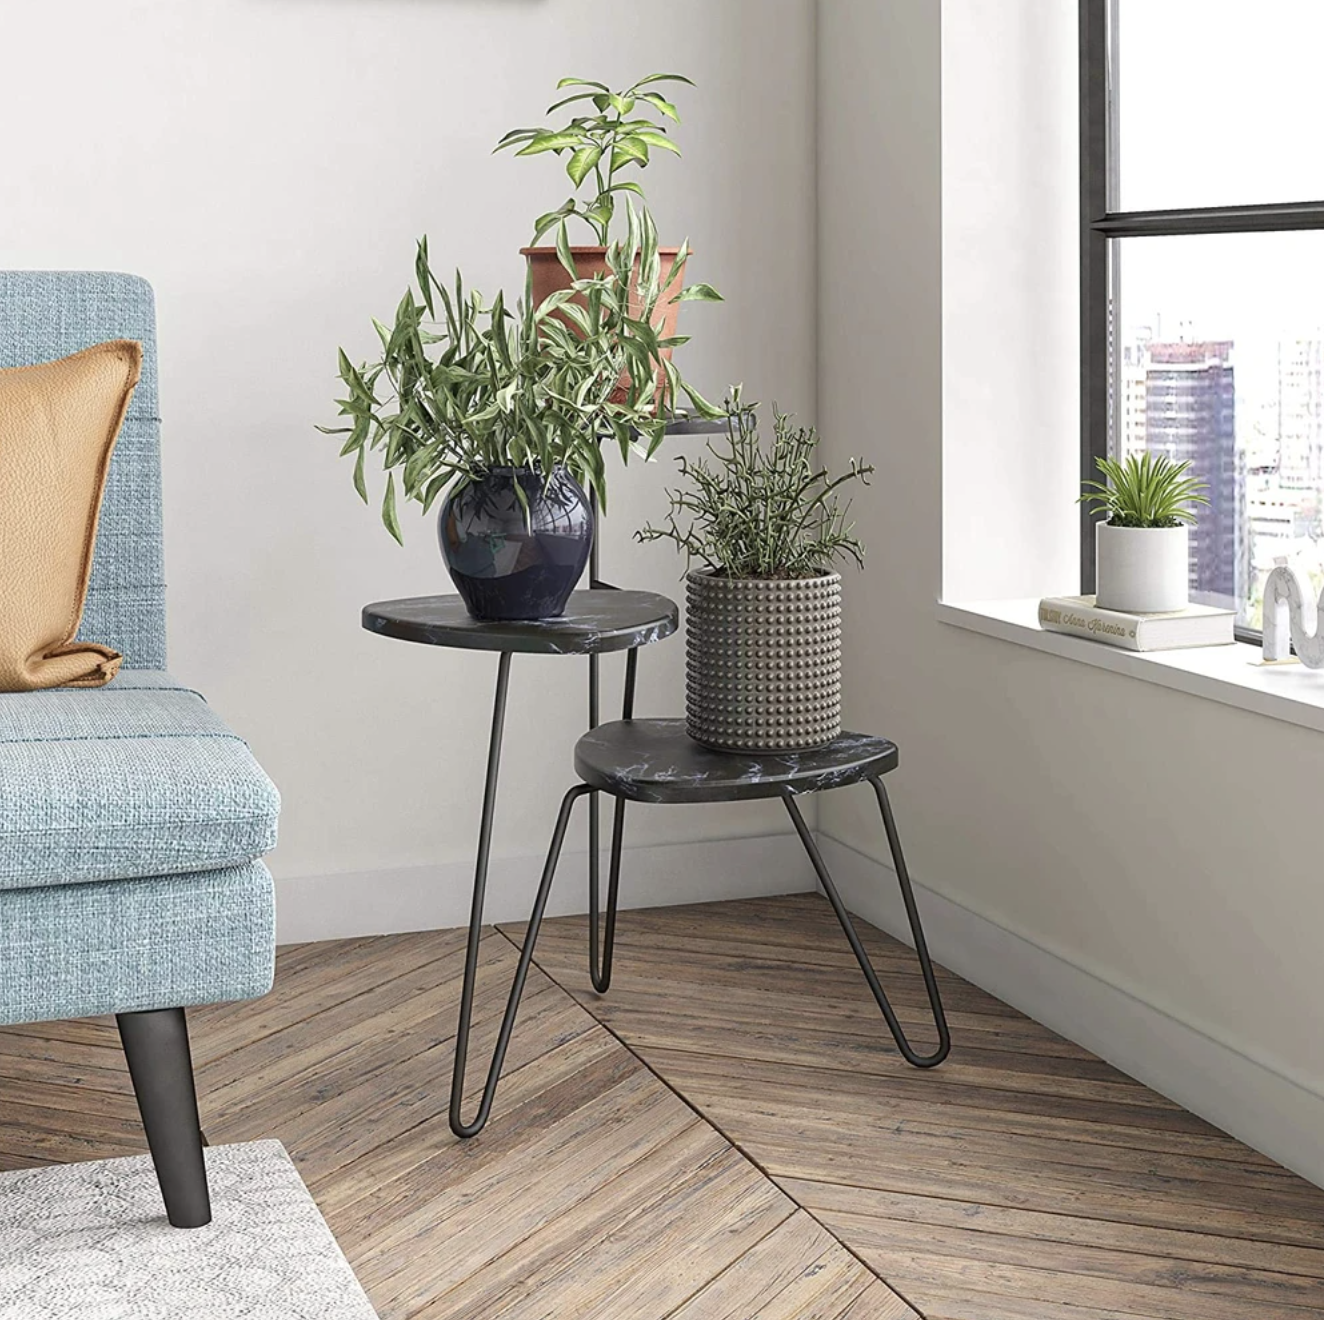 The black marble and metal plant stand displays three plants